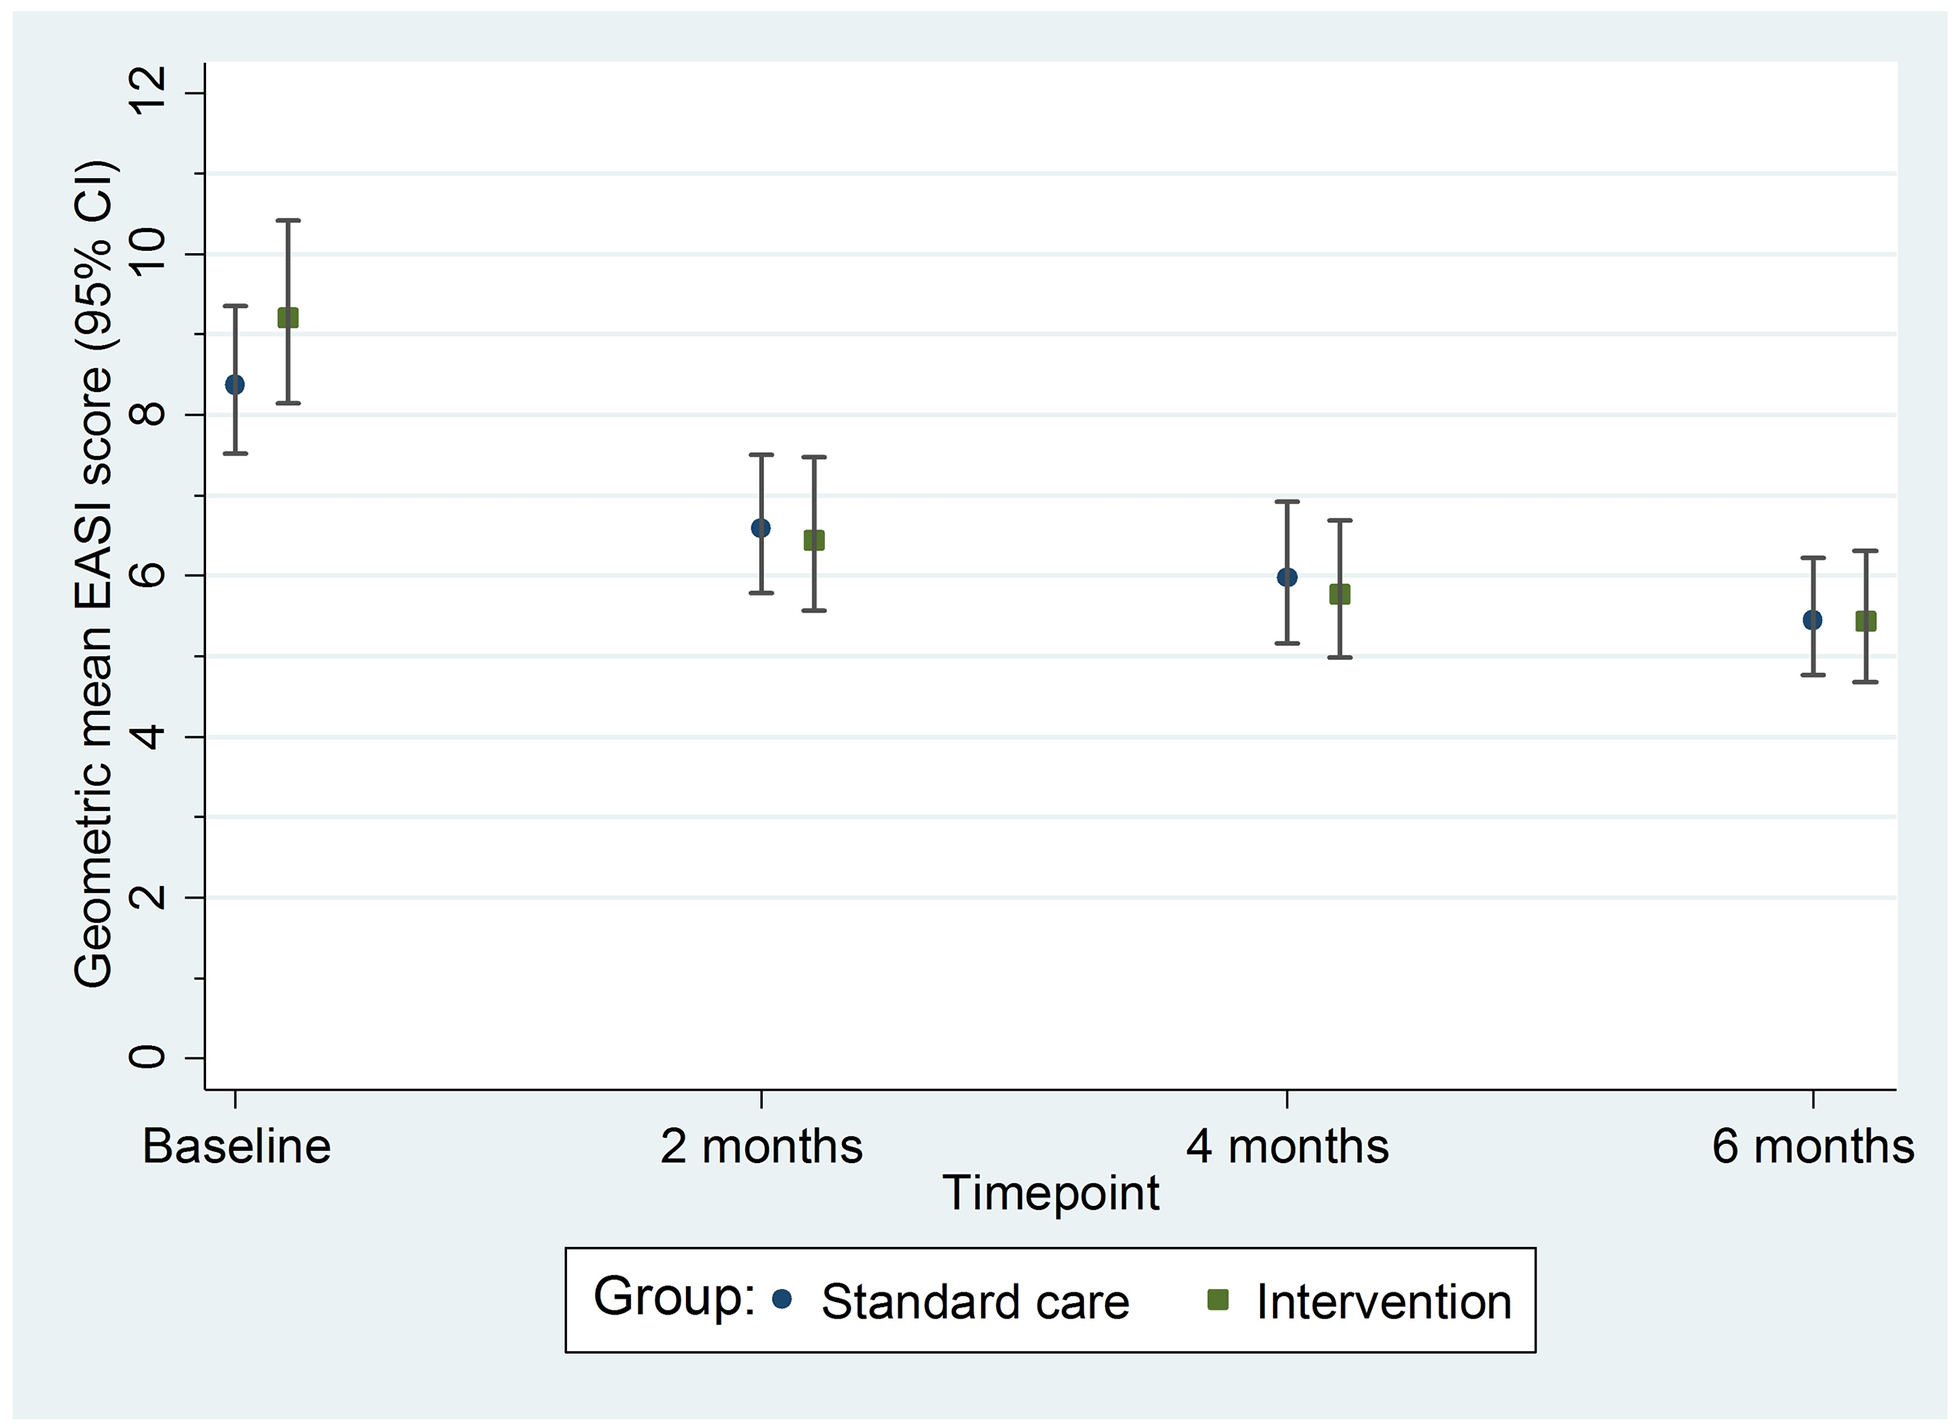 Primary outcome: Geometric mean nurse-assessed eczema severity (EASI score) with 95% confidence intervals.